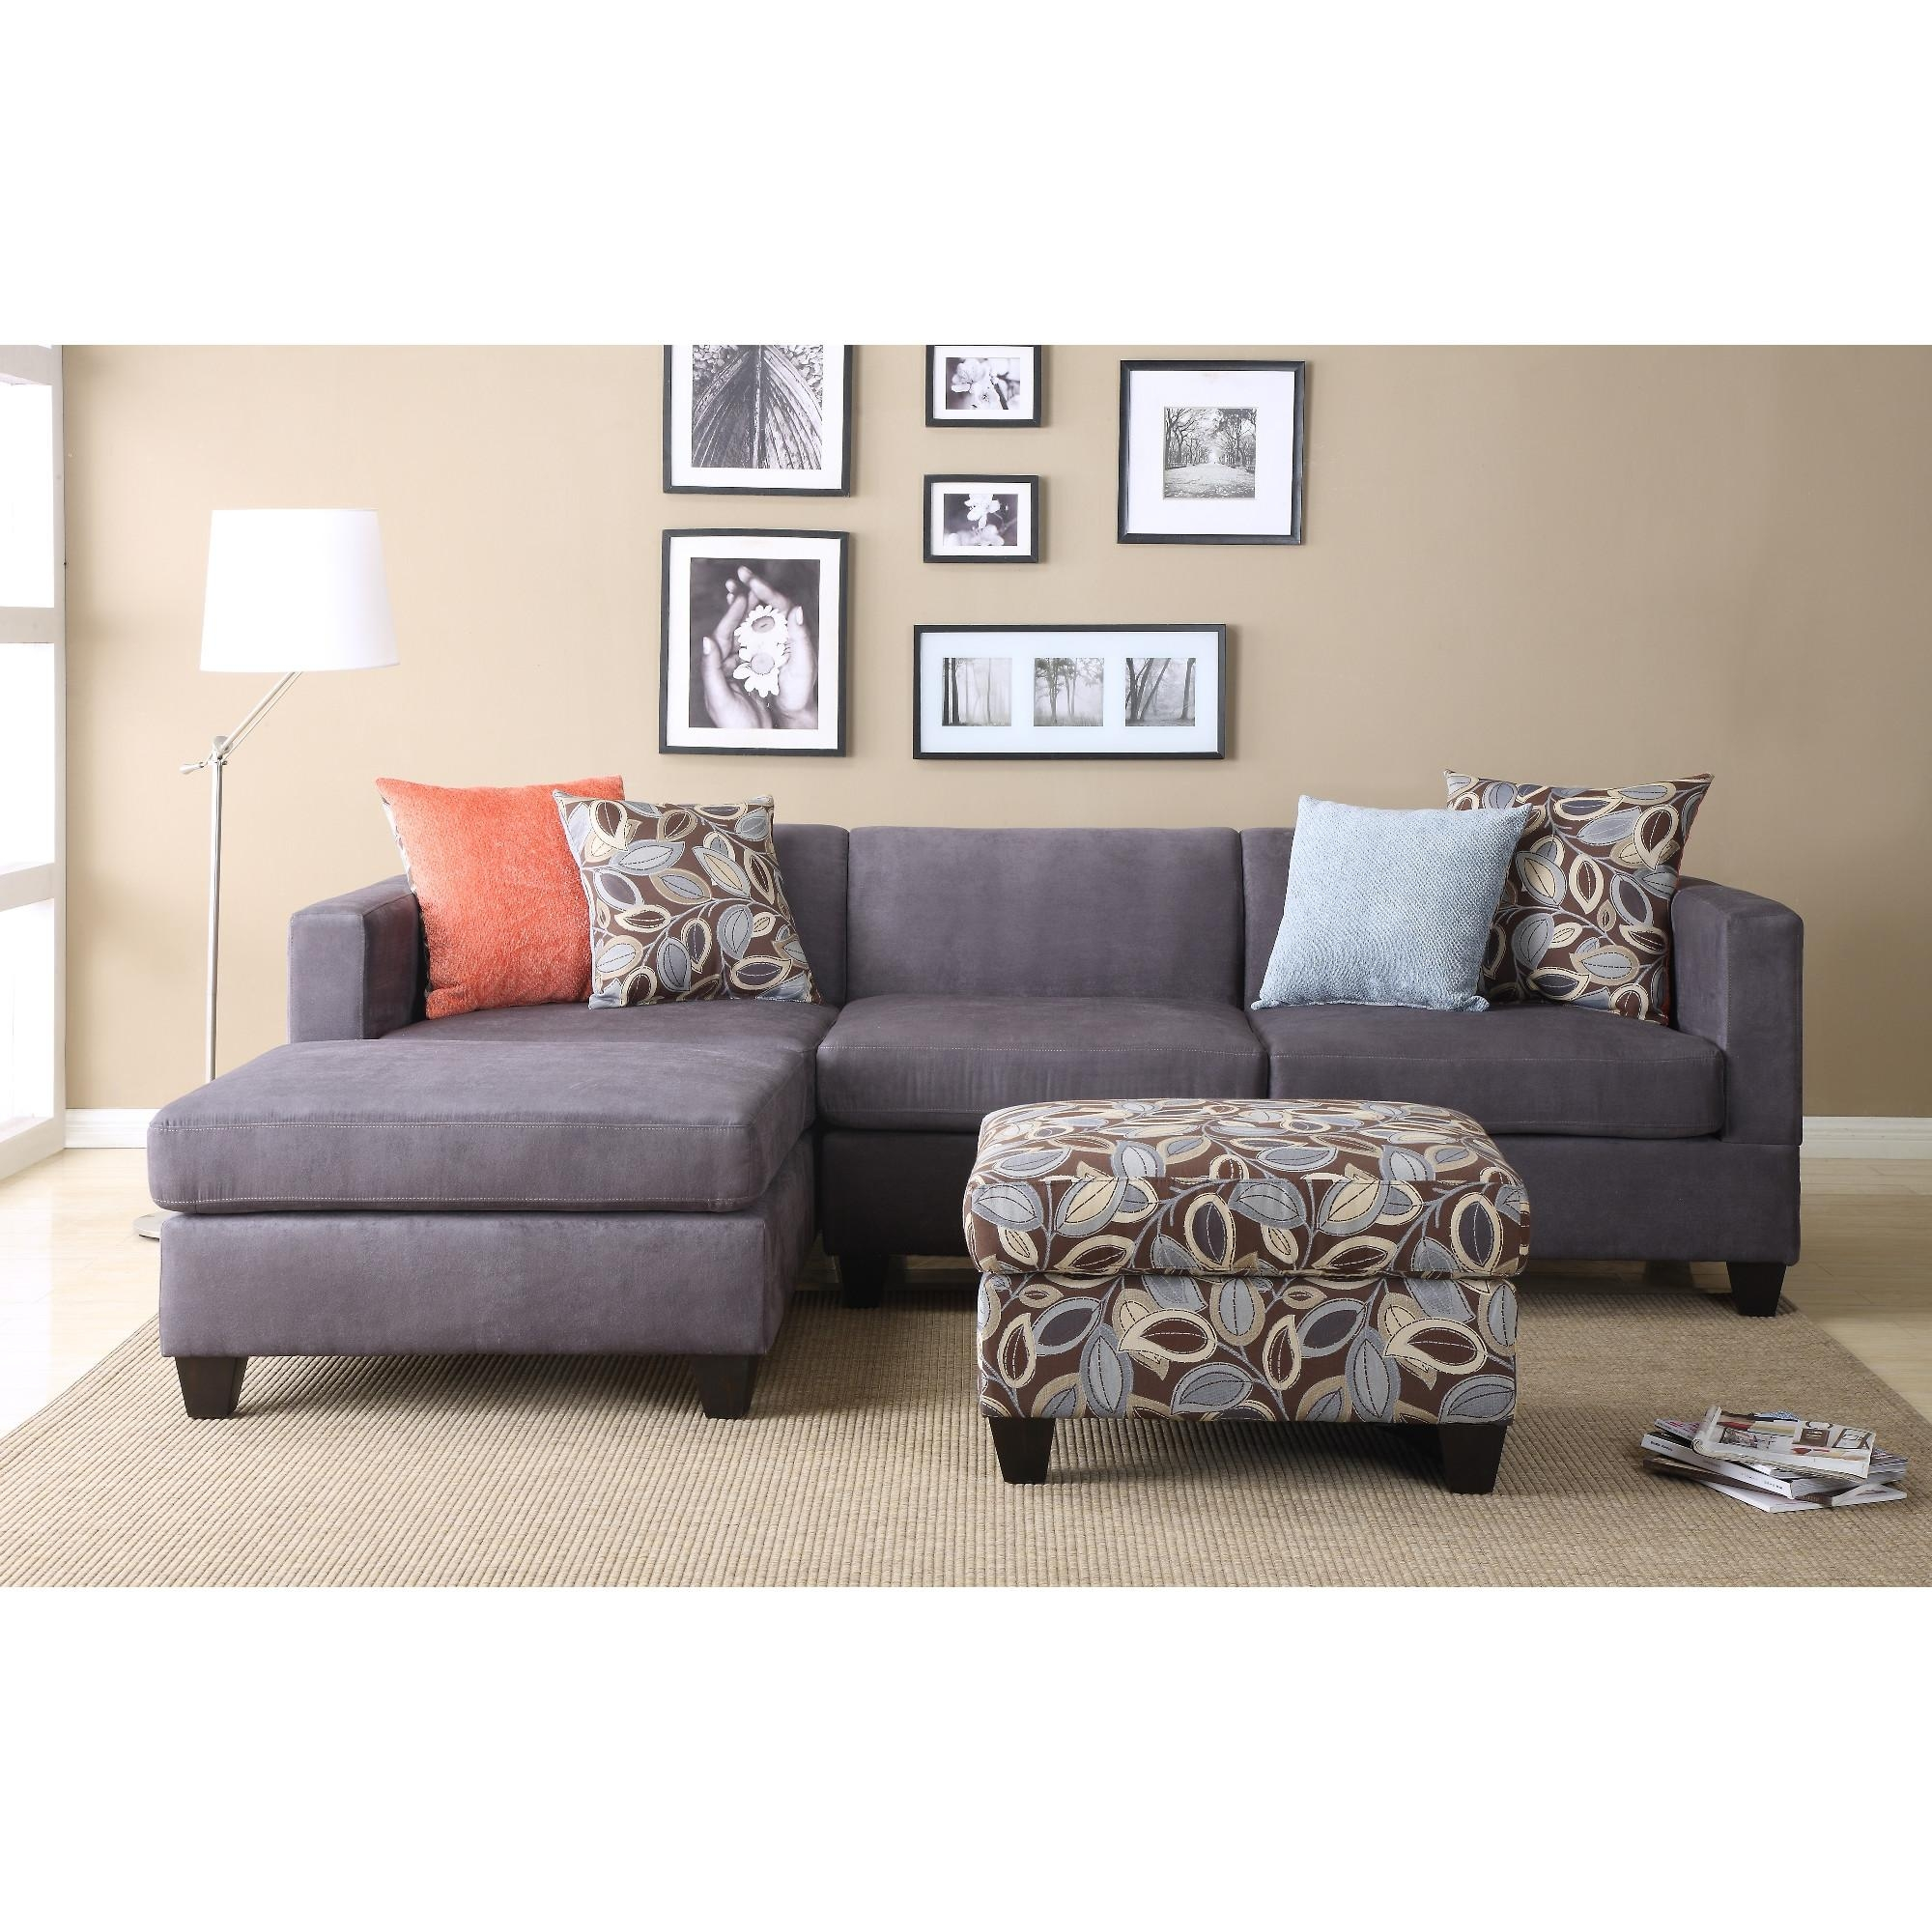 Furniture & Sofa: Perfect Small Spaces Configurable Sectional Sofa Intended For Mini Sectionals (Image 5 of 20)